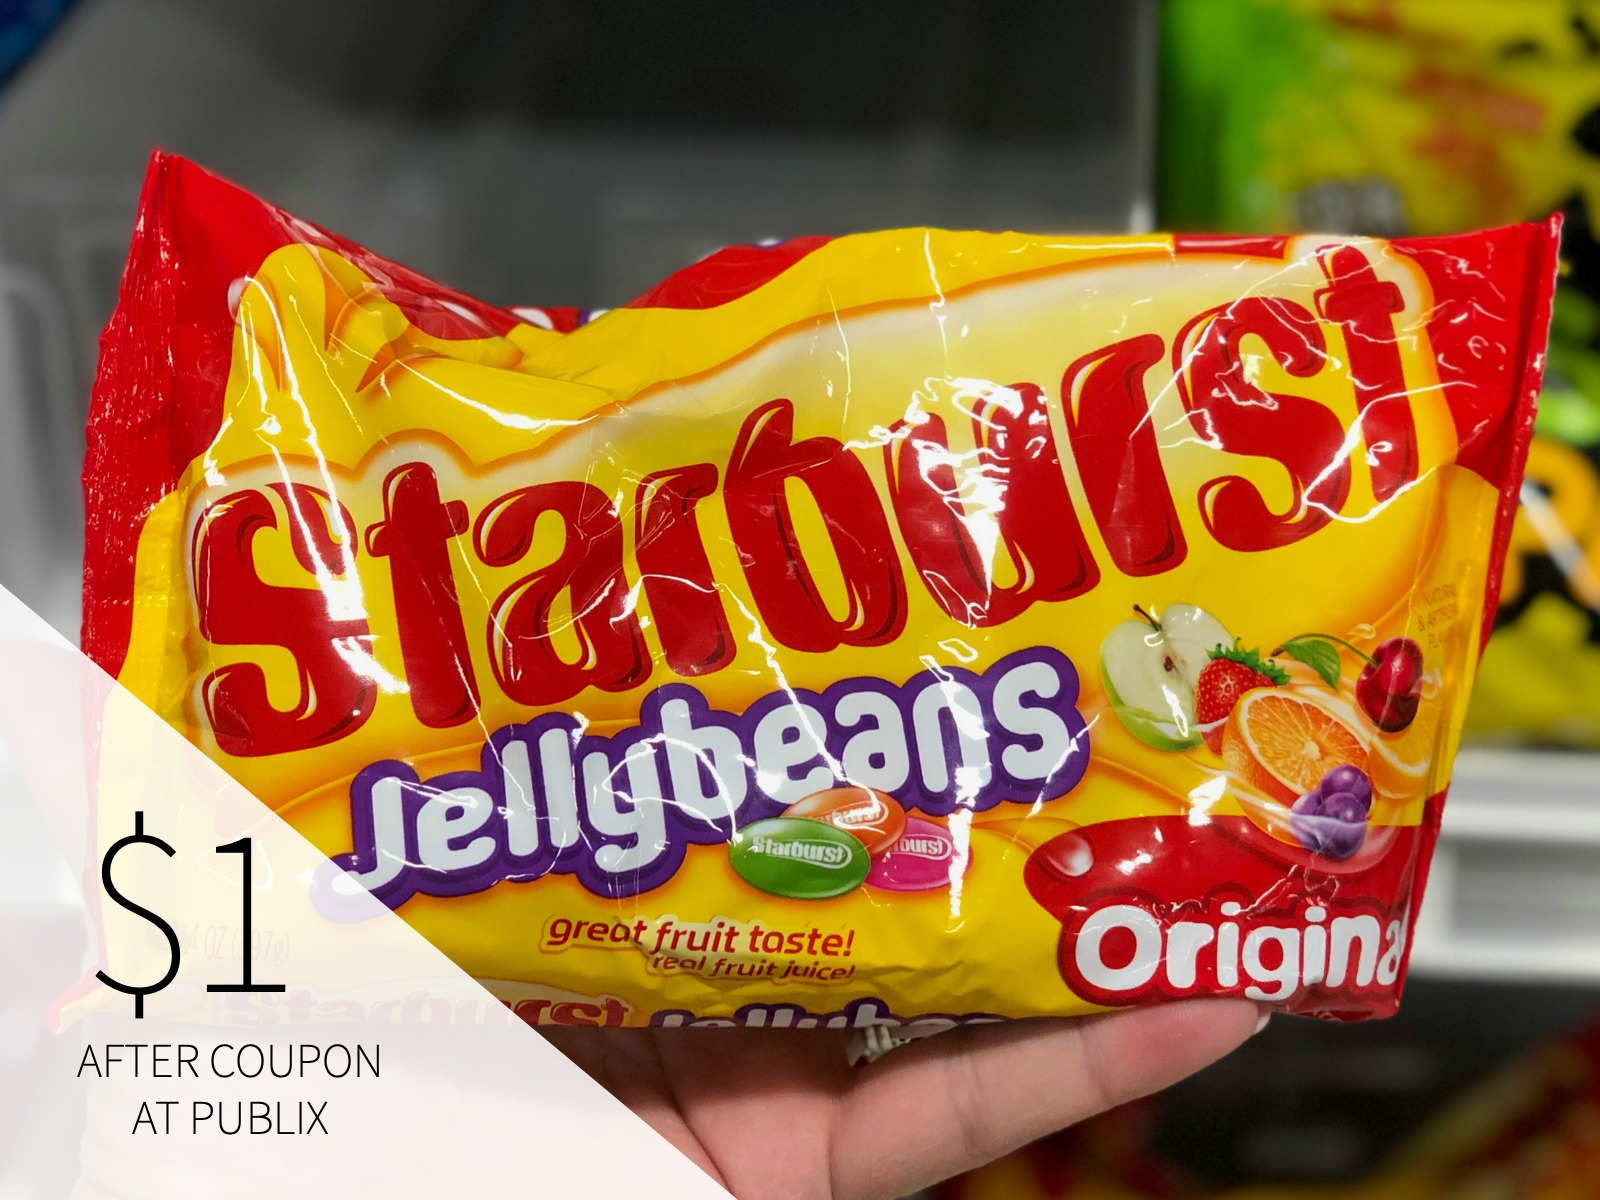 Starburst Jelly Beans Only 75¢ This Week At Publix on I Heart Publix 2